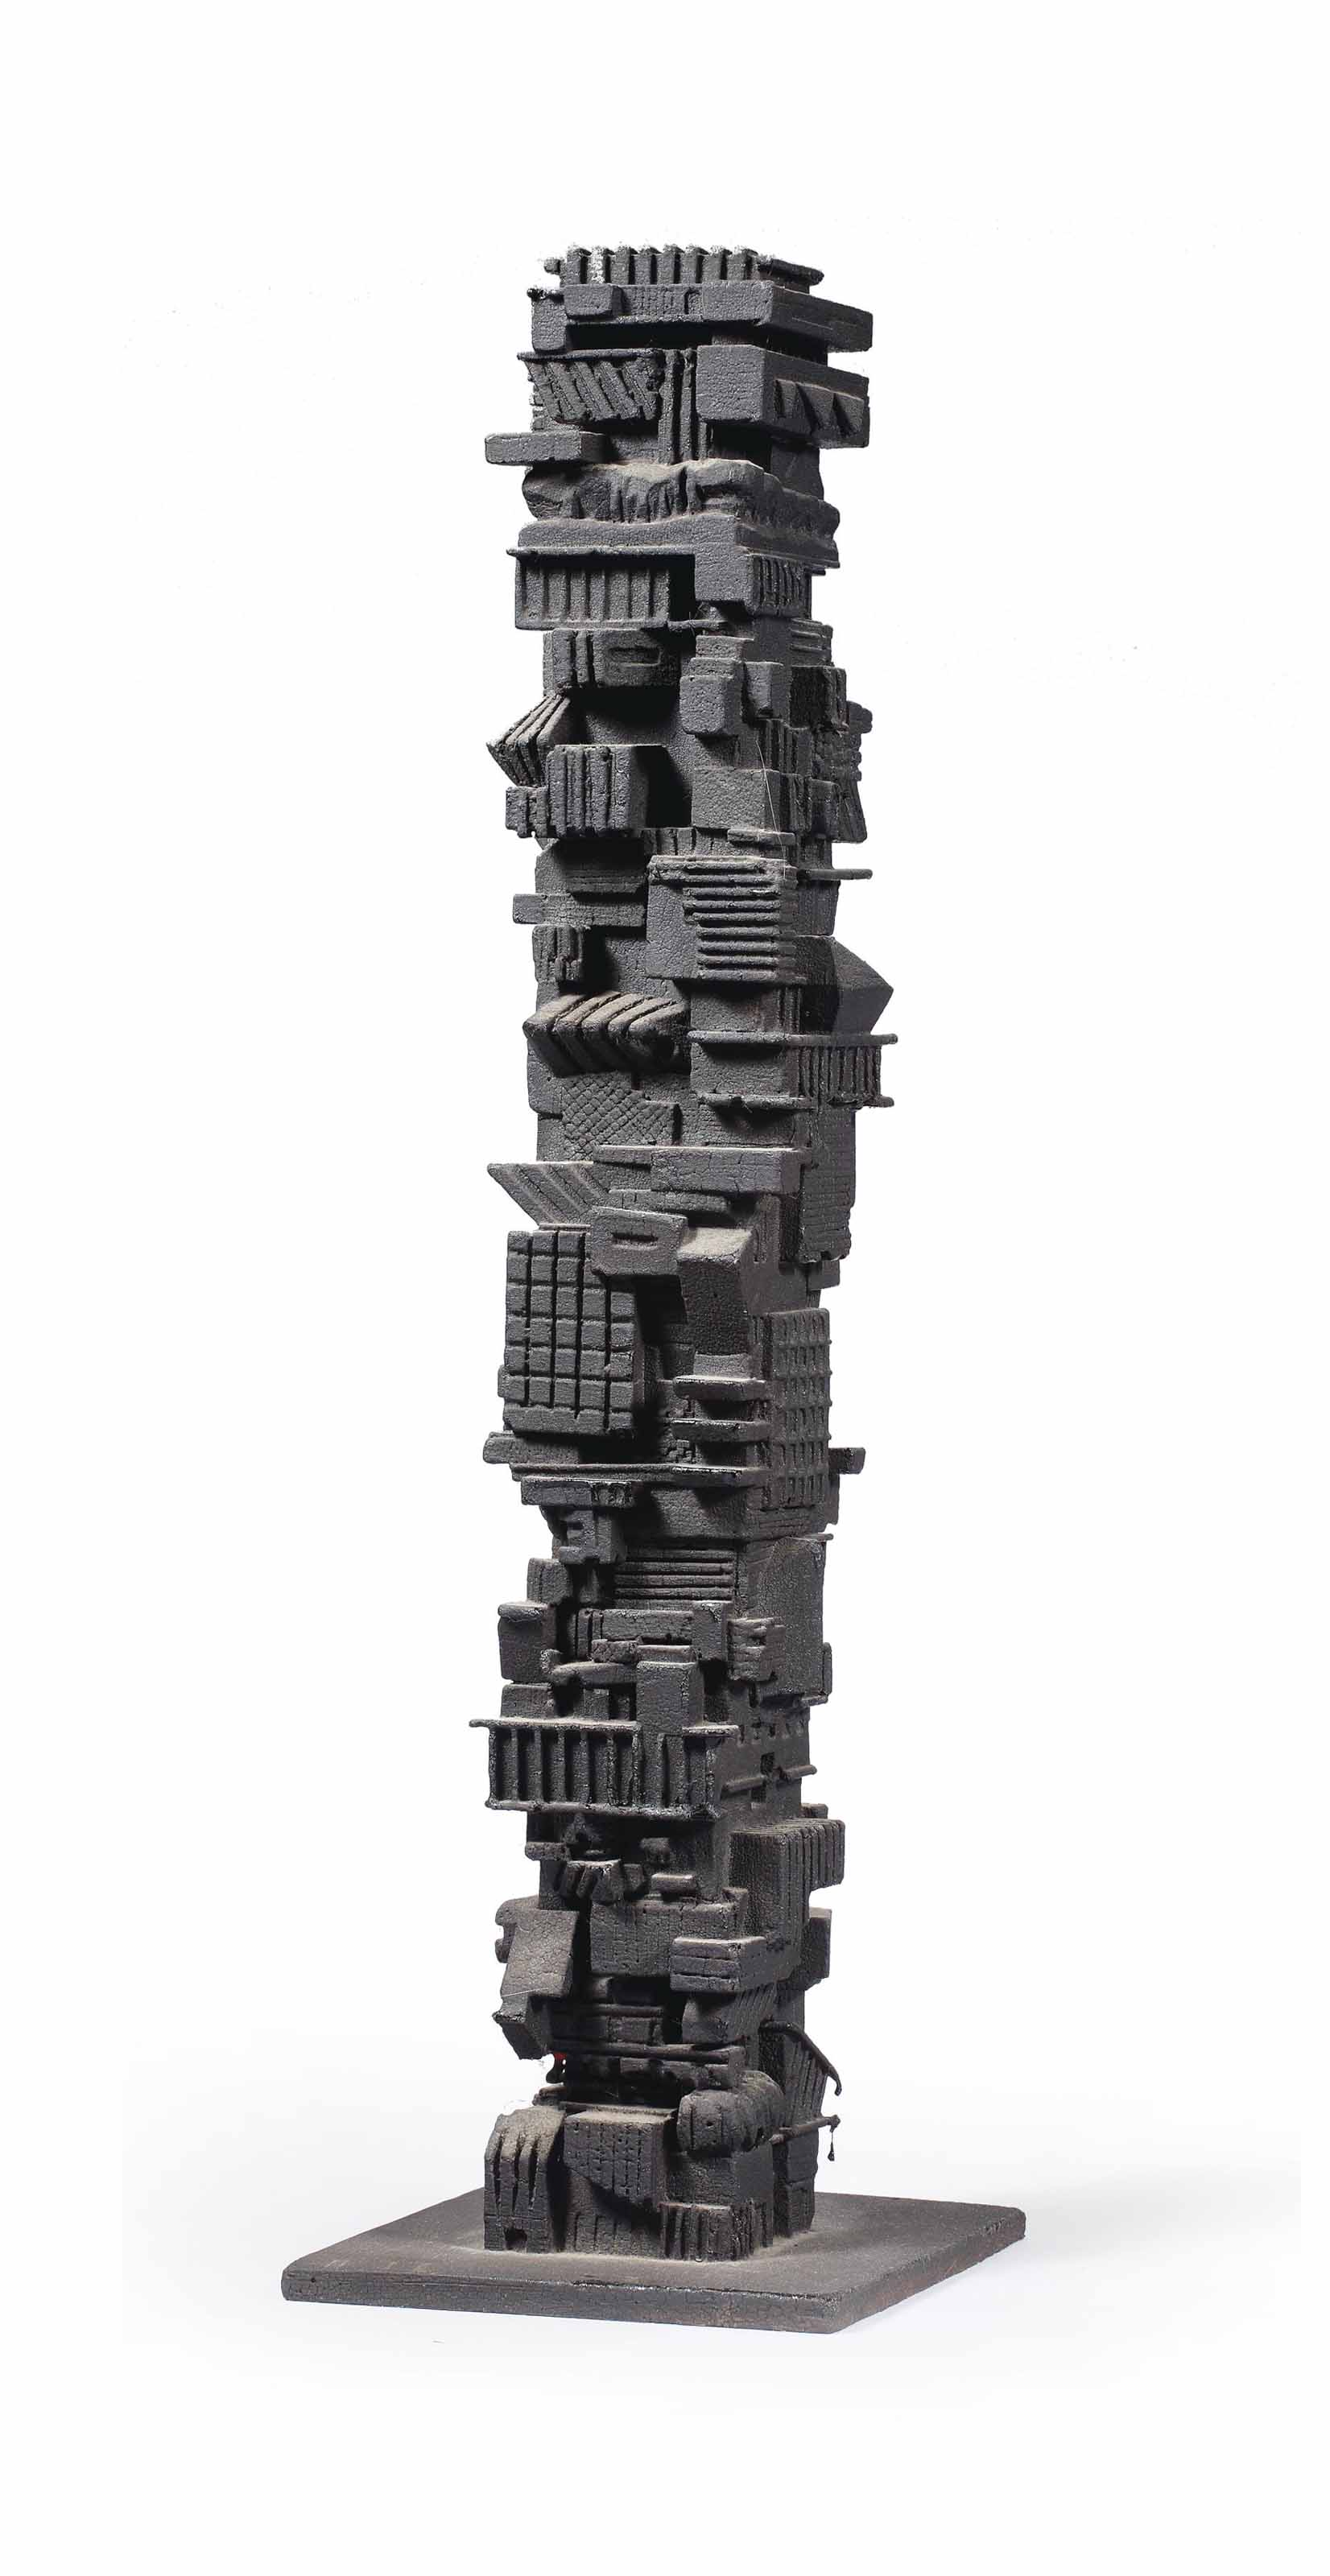 Maquette for non-homogenous apartment, San Paolo, Brazil